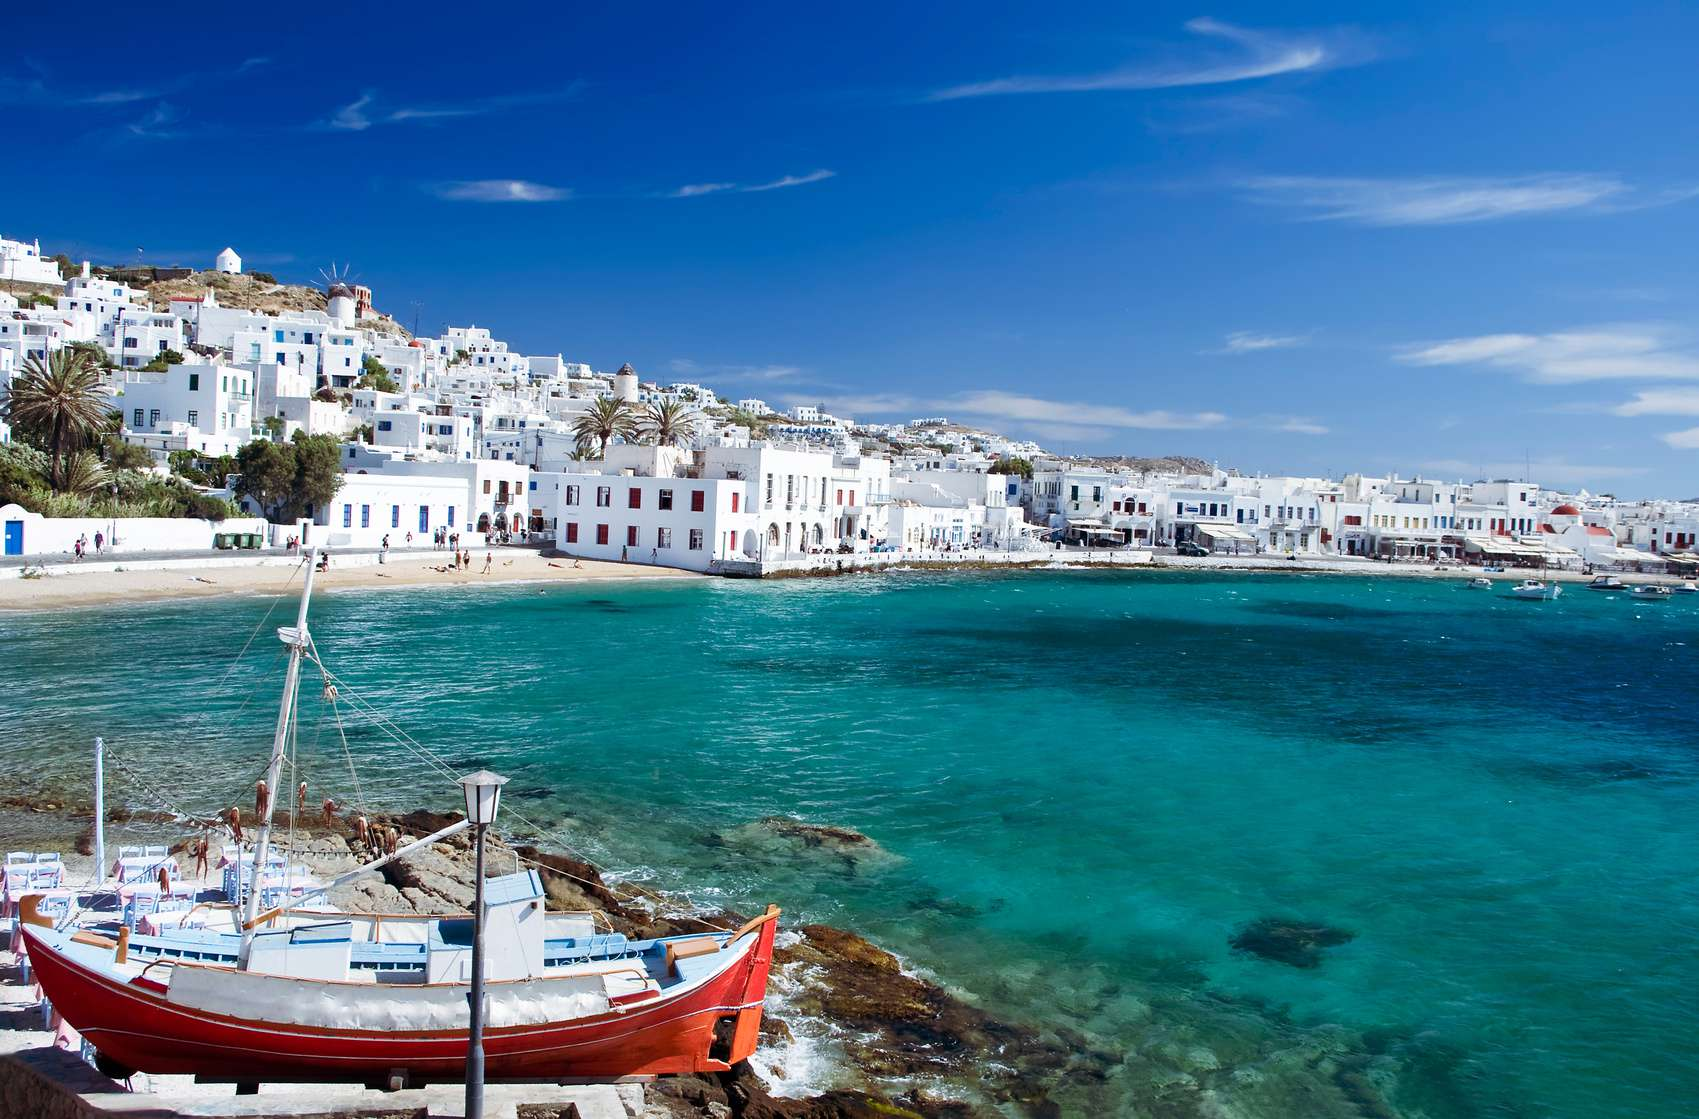 Mykonos Mini Cabin Tour - Blue Cruise,Light Tours Blue Cruise, Blue Cruise, Discount Tours,Bodrum Private Yacht Charter 314